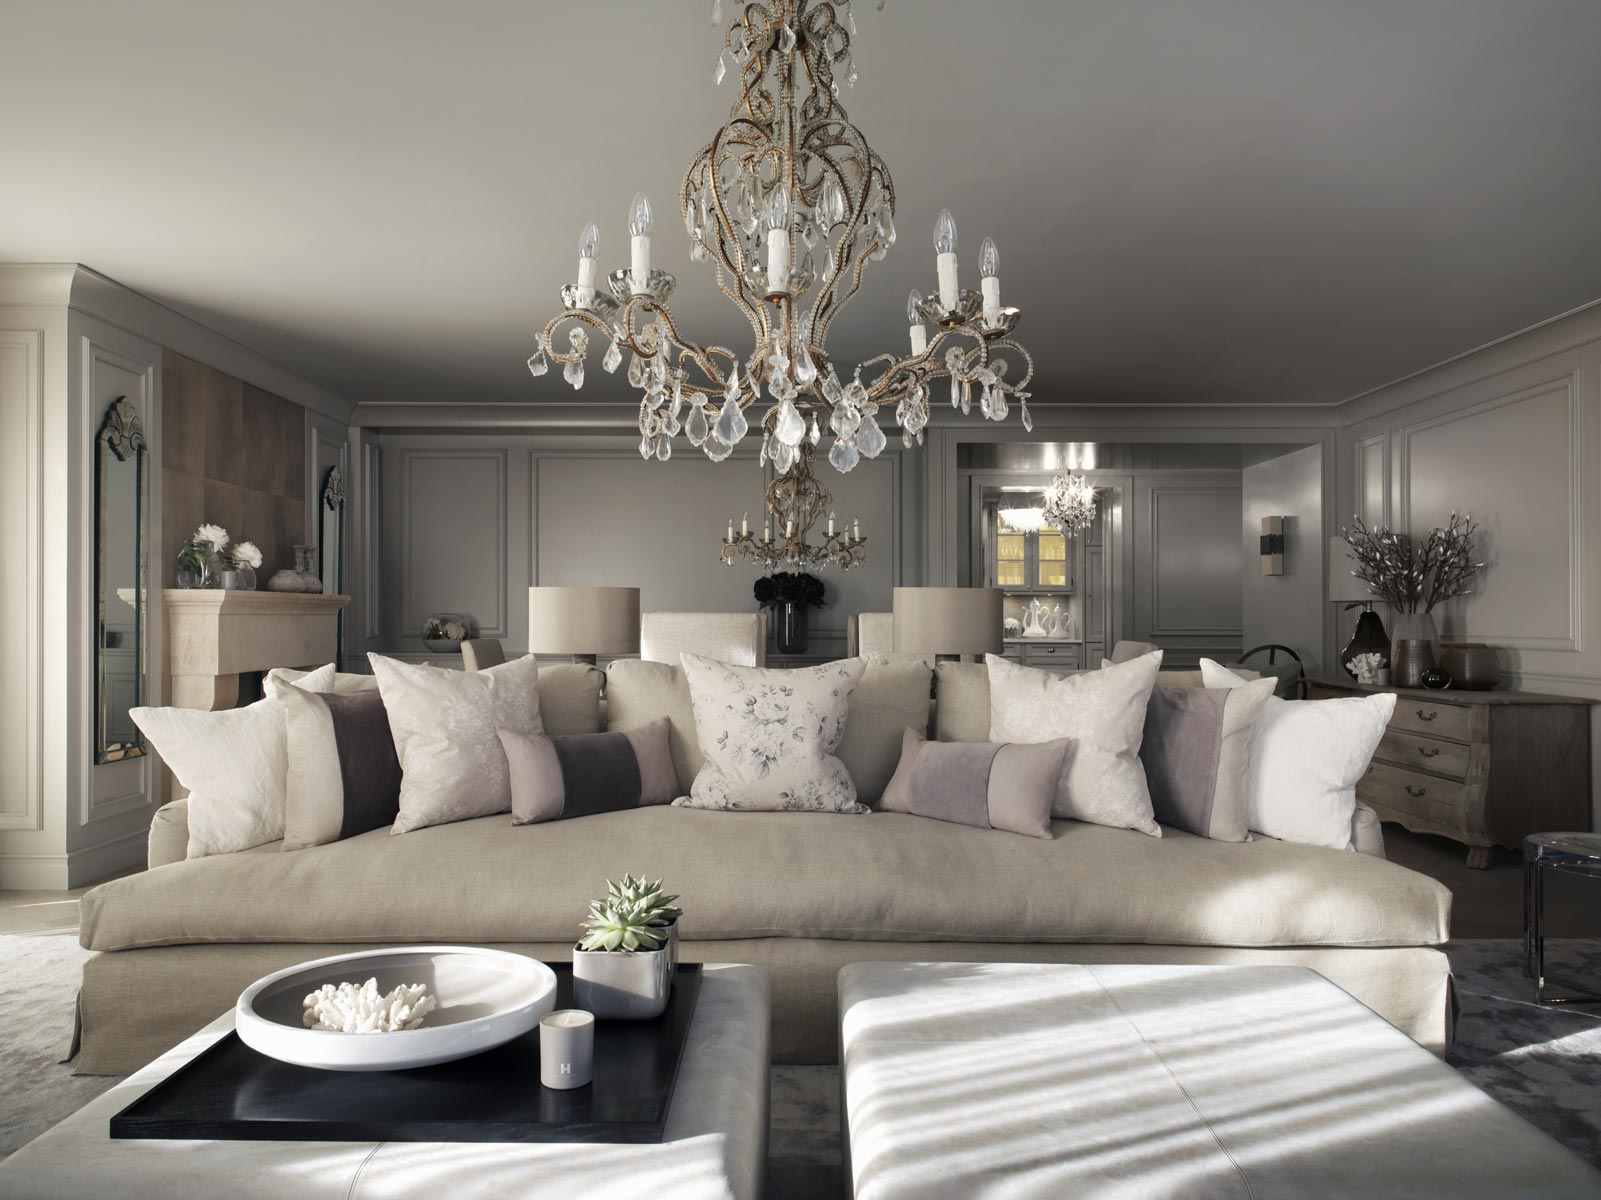 Top 10 kelly hoppen design ideas for Home interior inspiration